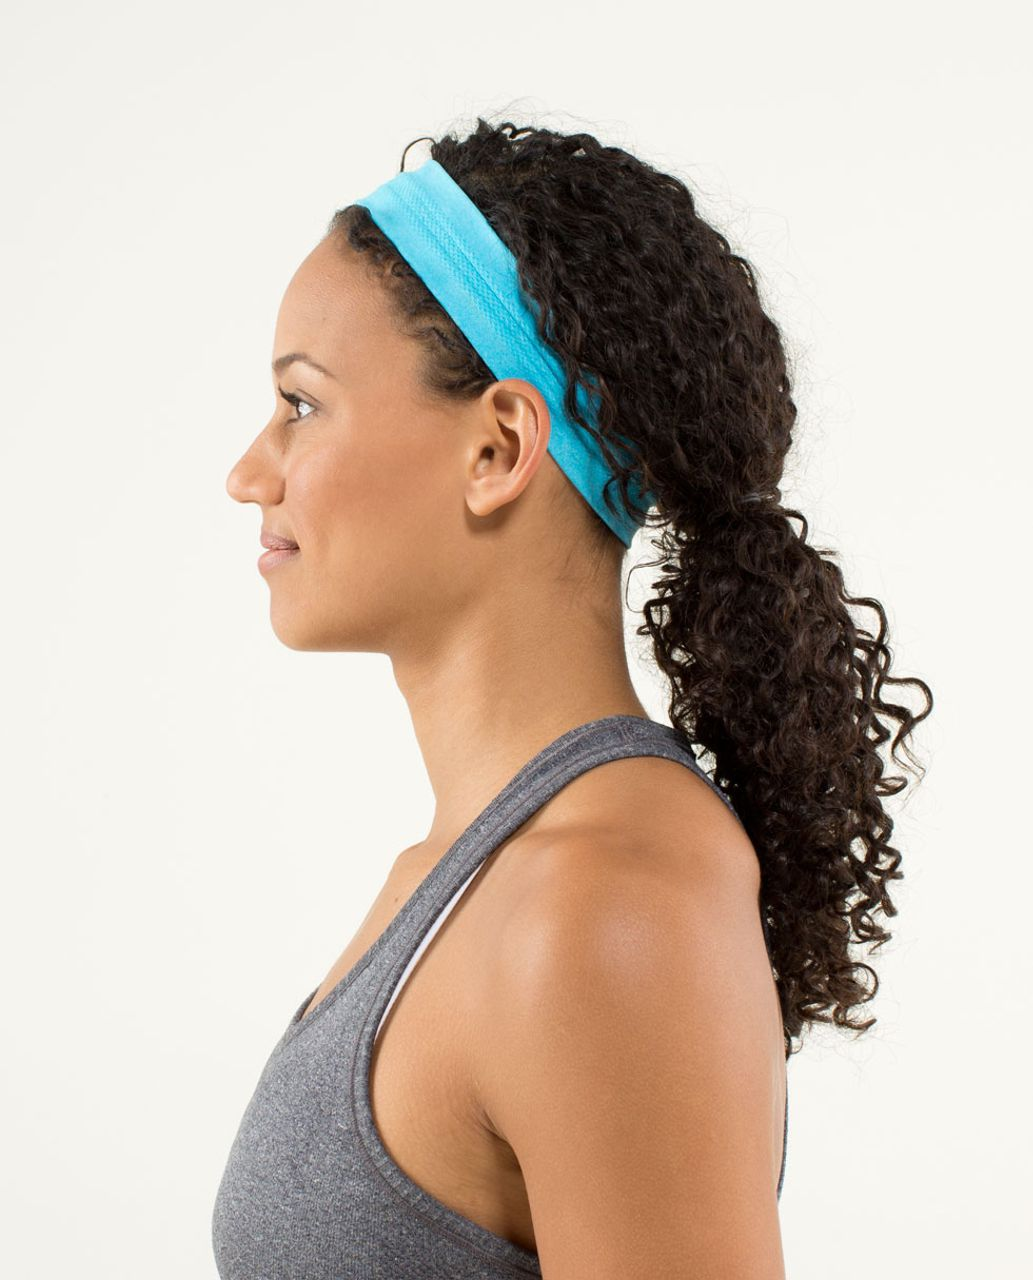 280b210e Lululemon Swiftly Headband - Spry Blue - lulu fanatics